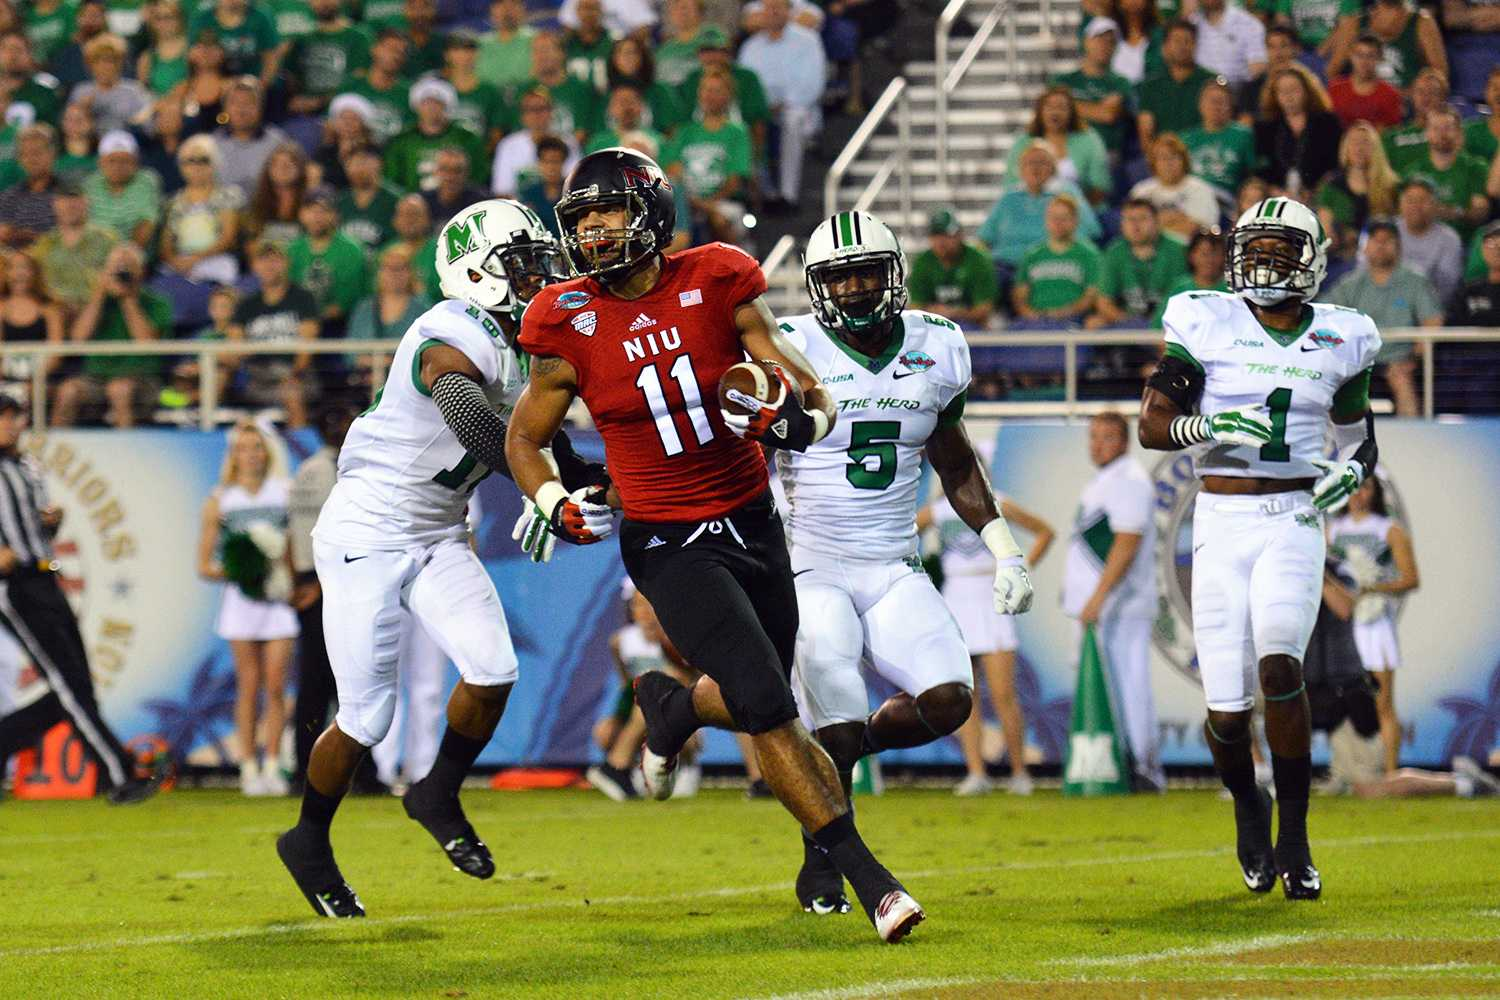 Northern Illinois University wide receiver Juwan Brescacin celebrates as he scores the first touchdown of the inaugural Boca Raton Bowl held on December 24.